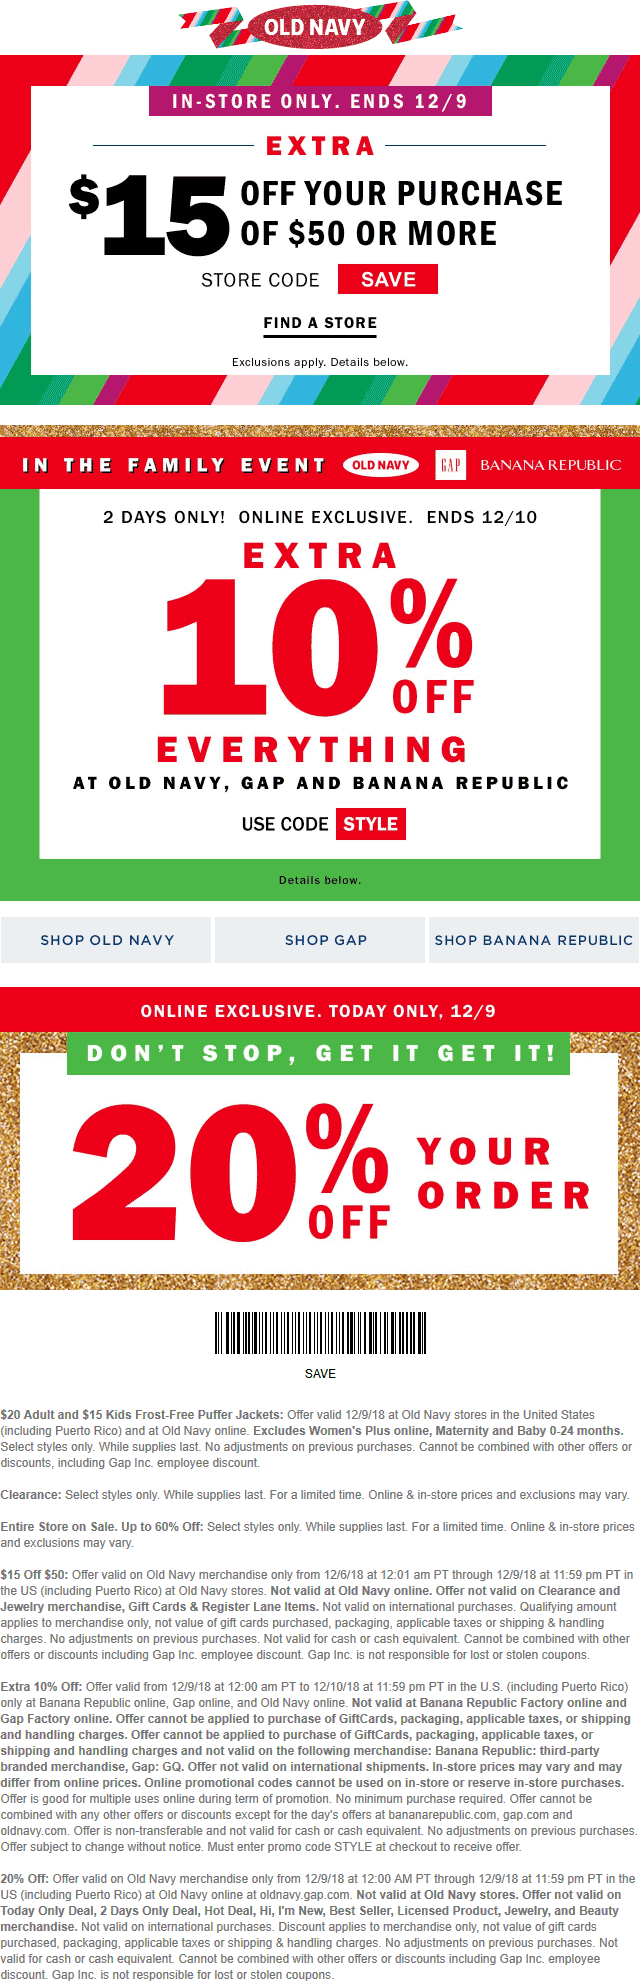 OldNavy.com Promo Coupon $15 off $50 & more today at Old Navy, or 20% online no code needed